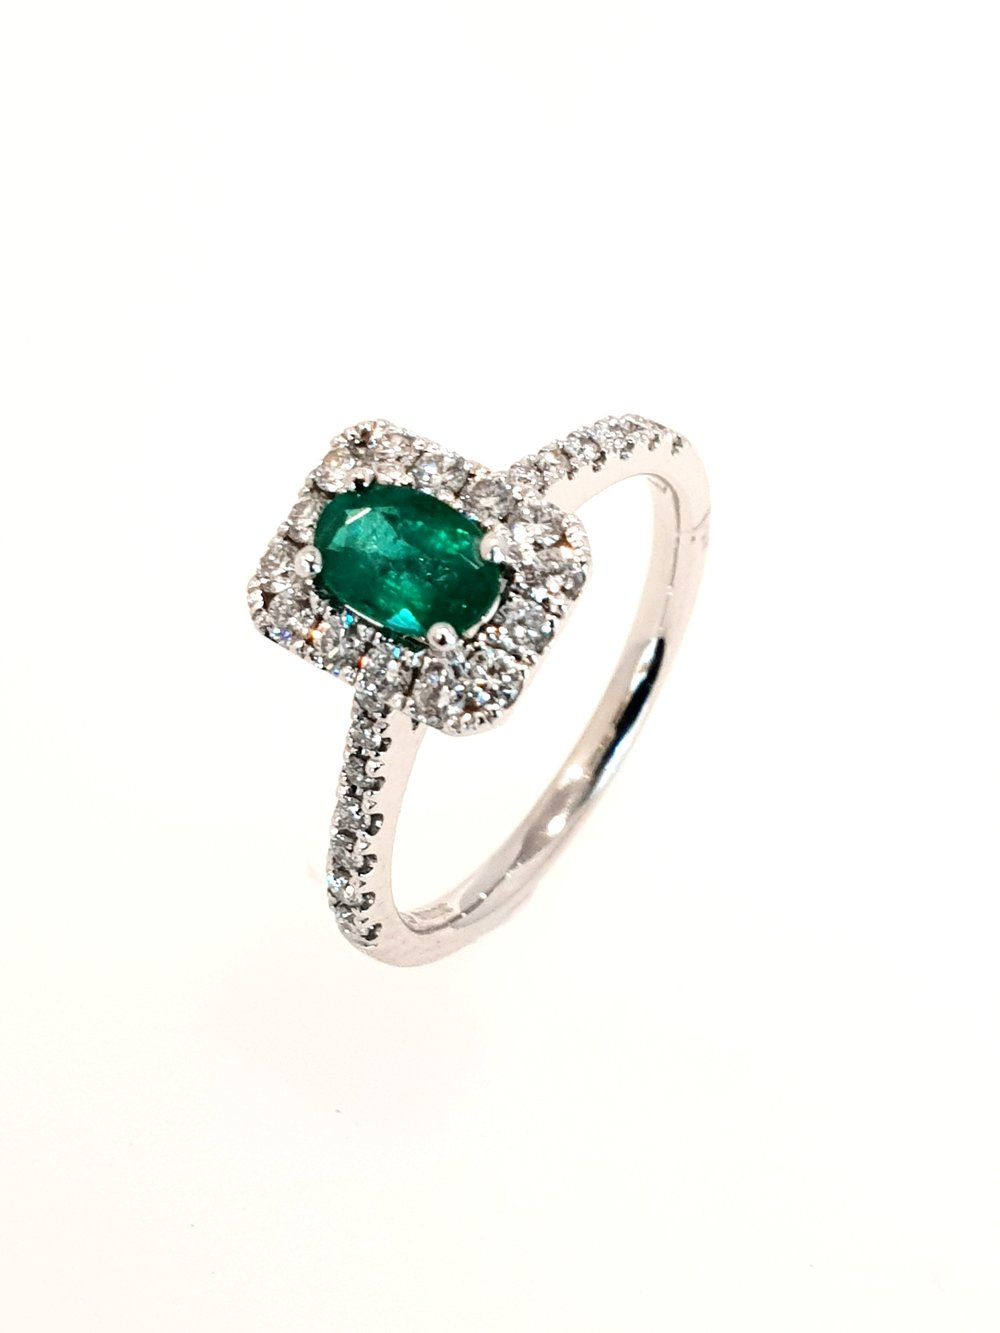 18ct White Gold Emerald(.43ct) & Diamond Ring  Diamond: .37ct, G, Si1  Stock Code: N8985  £1900